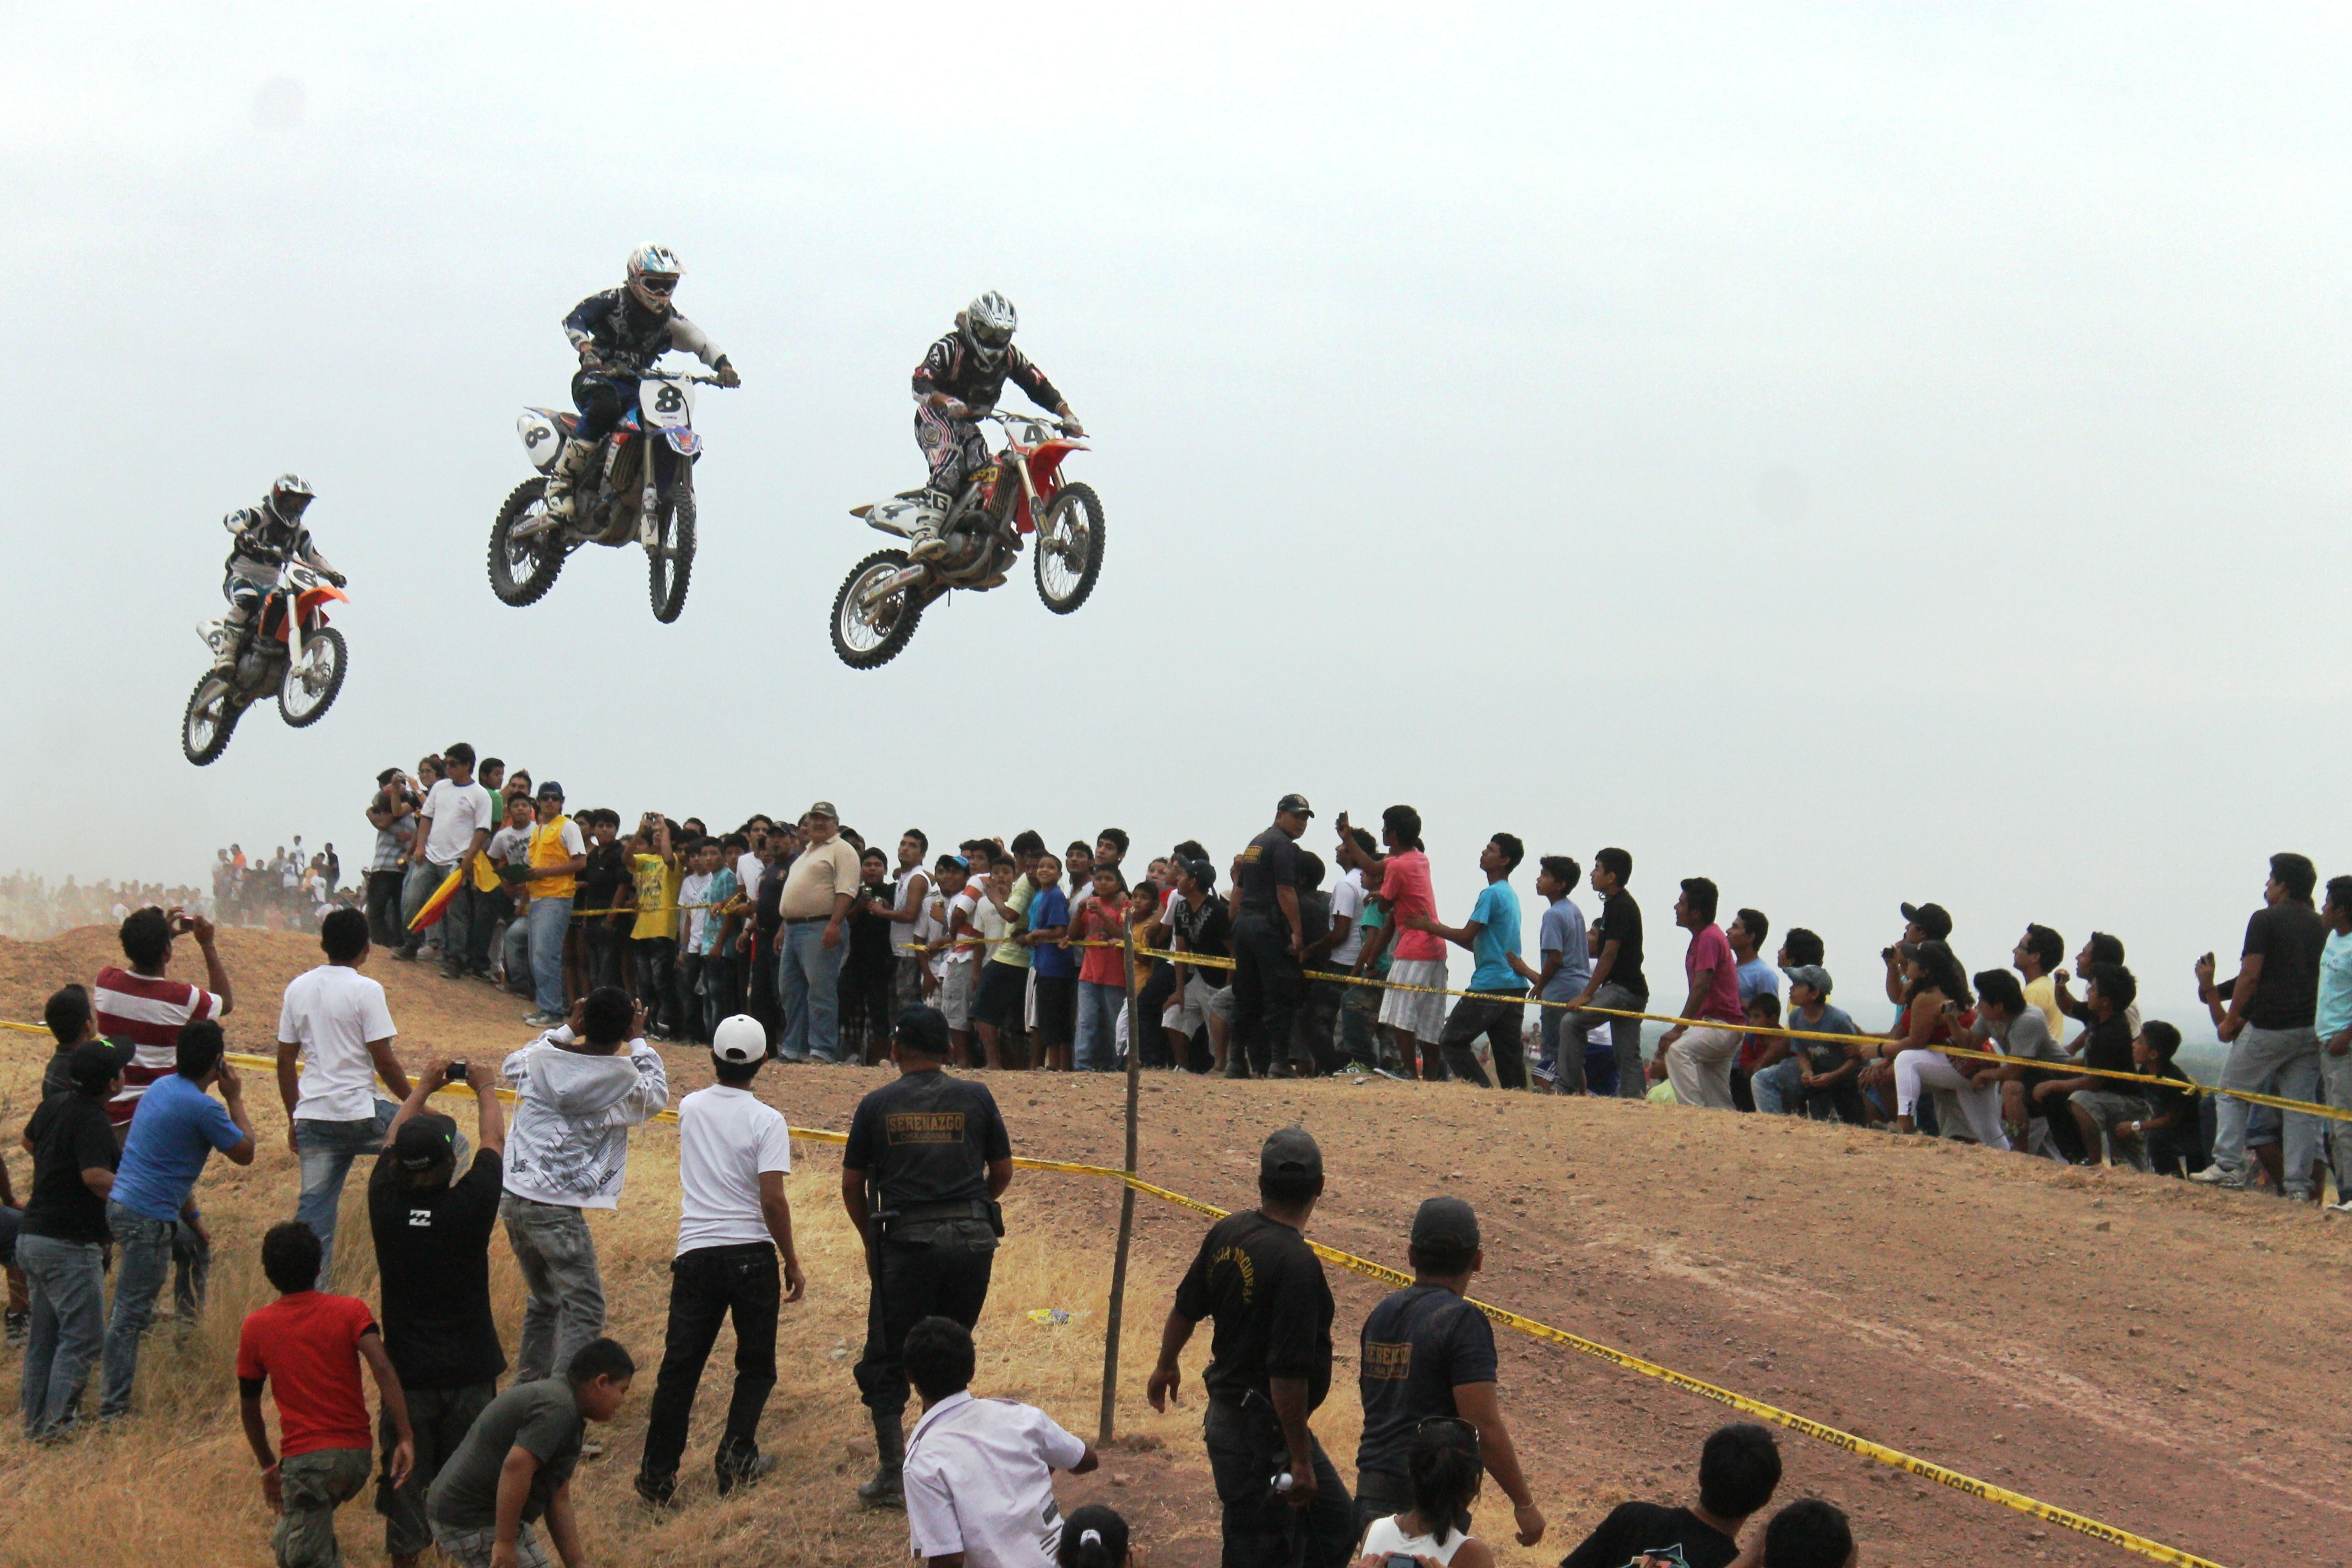 three men riding motocross dirt bikes in mid air near people during day